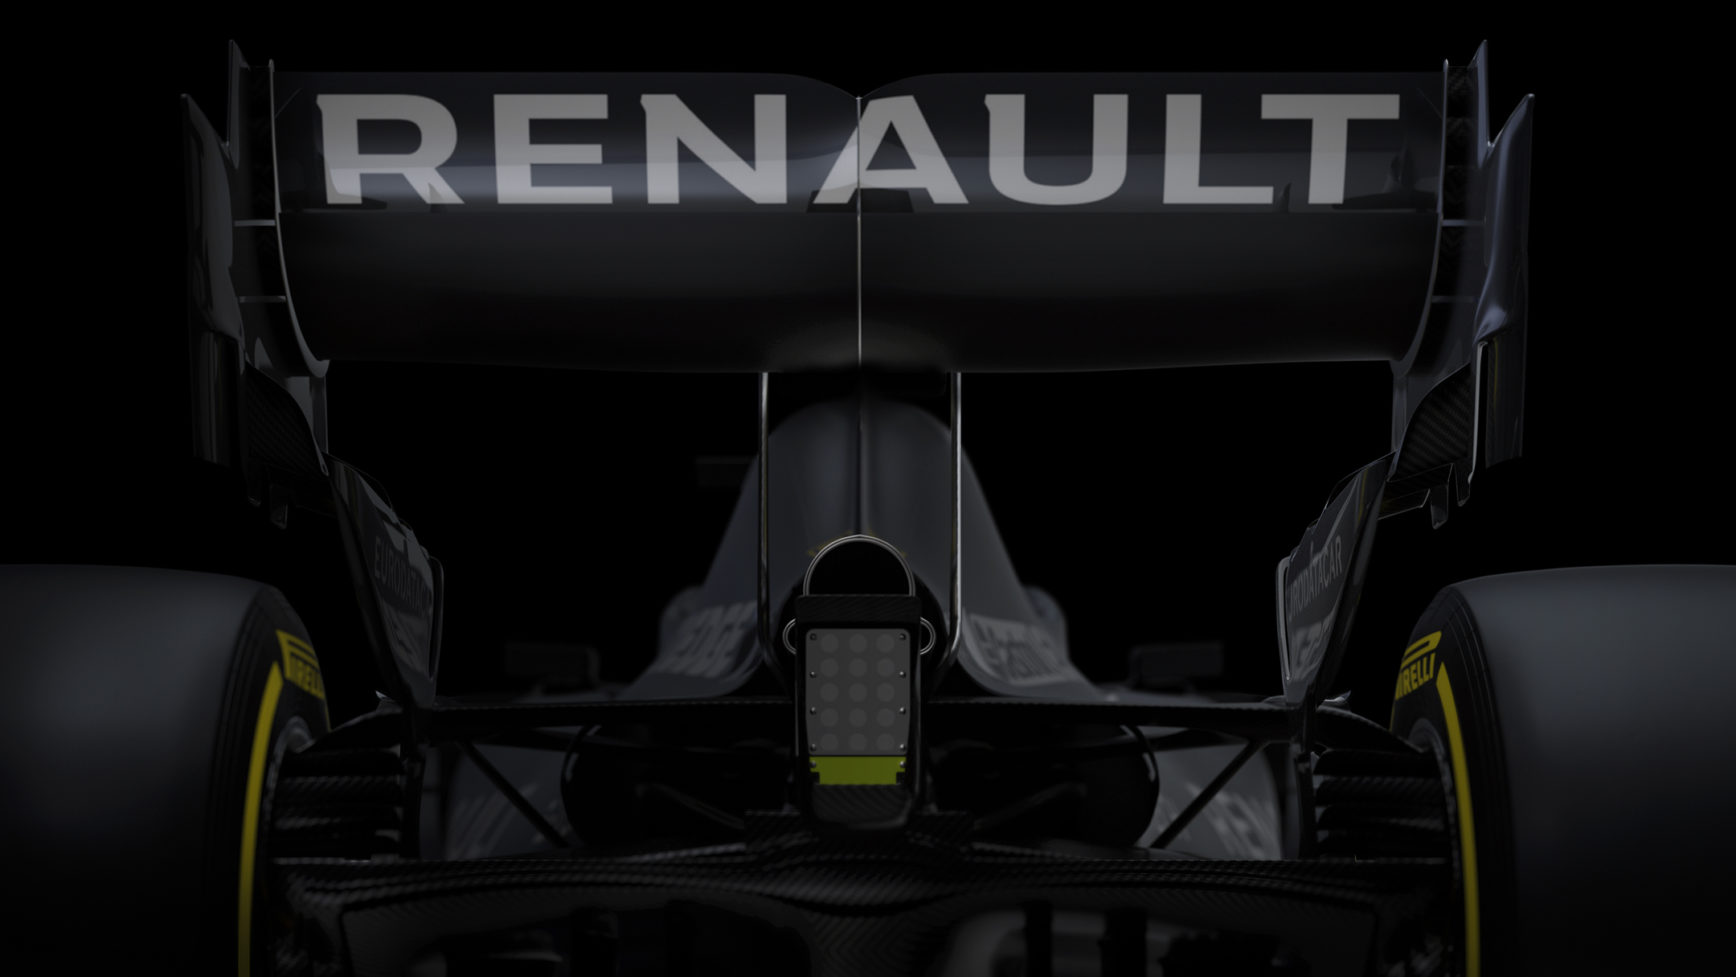 F1 - Renault F1 Team - R.S. 20 - 2020 - Testing livery - rear face